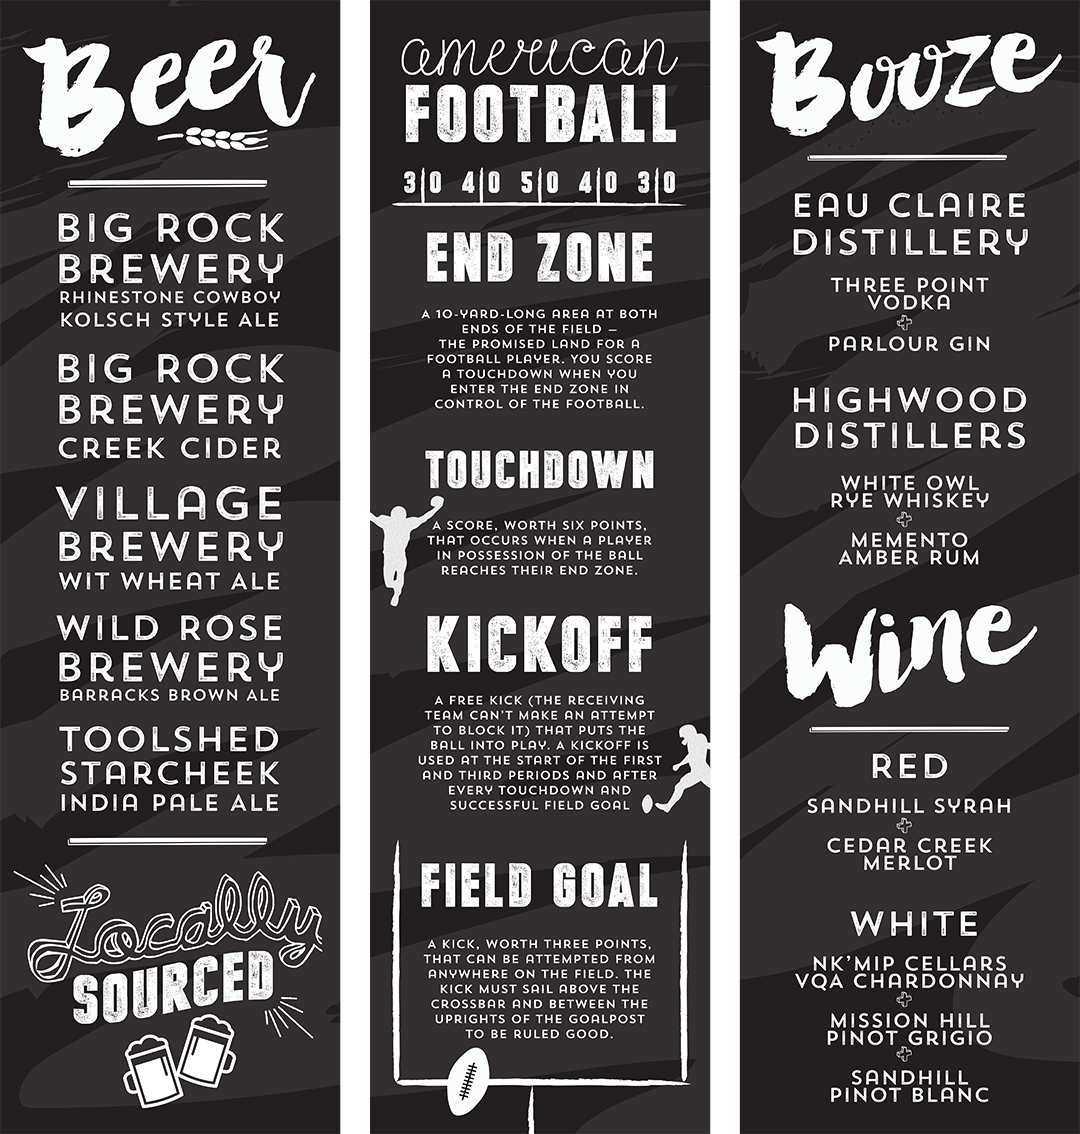 Corporate Signage Design - Beer and Booze